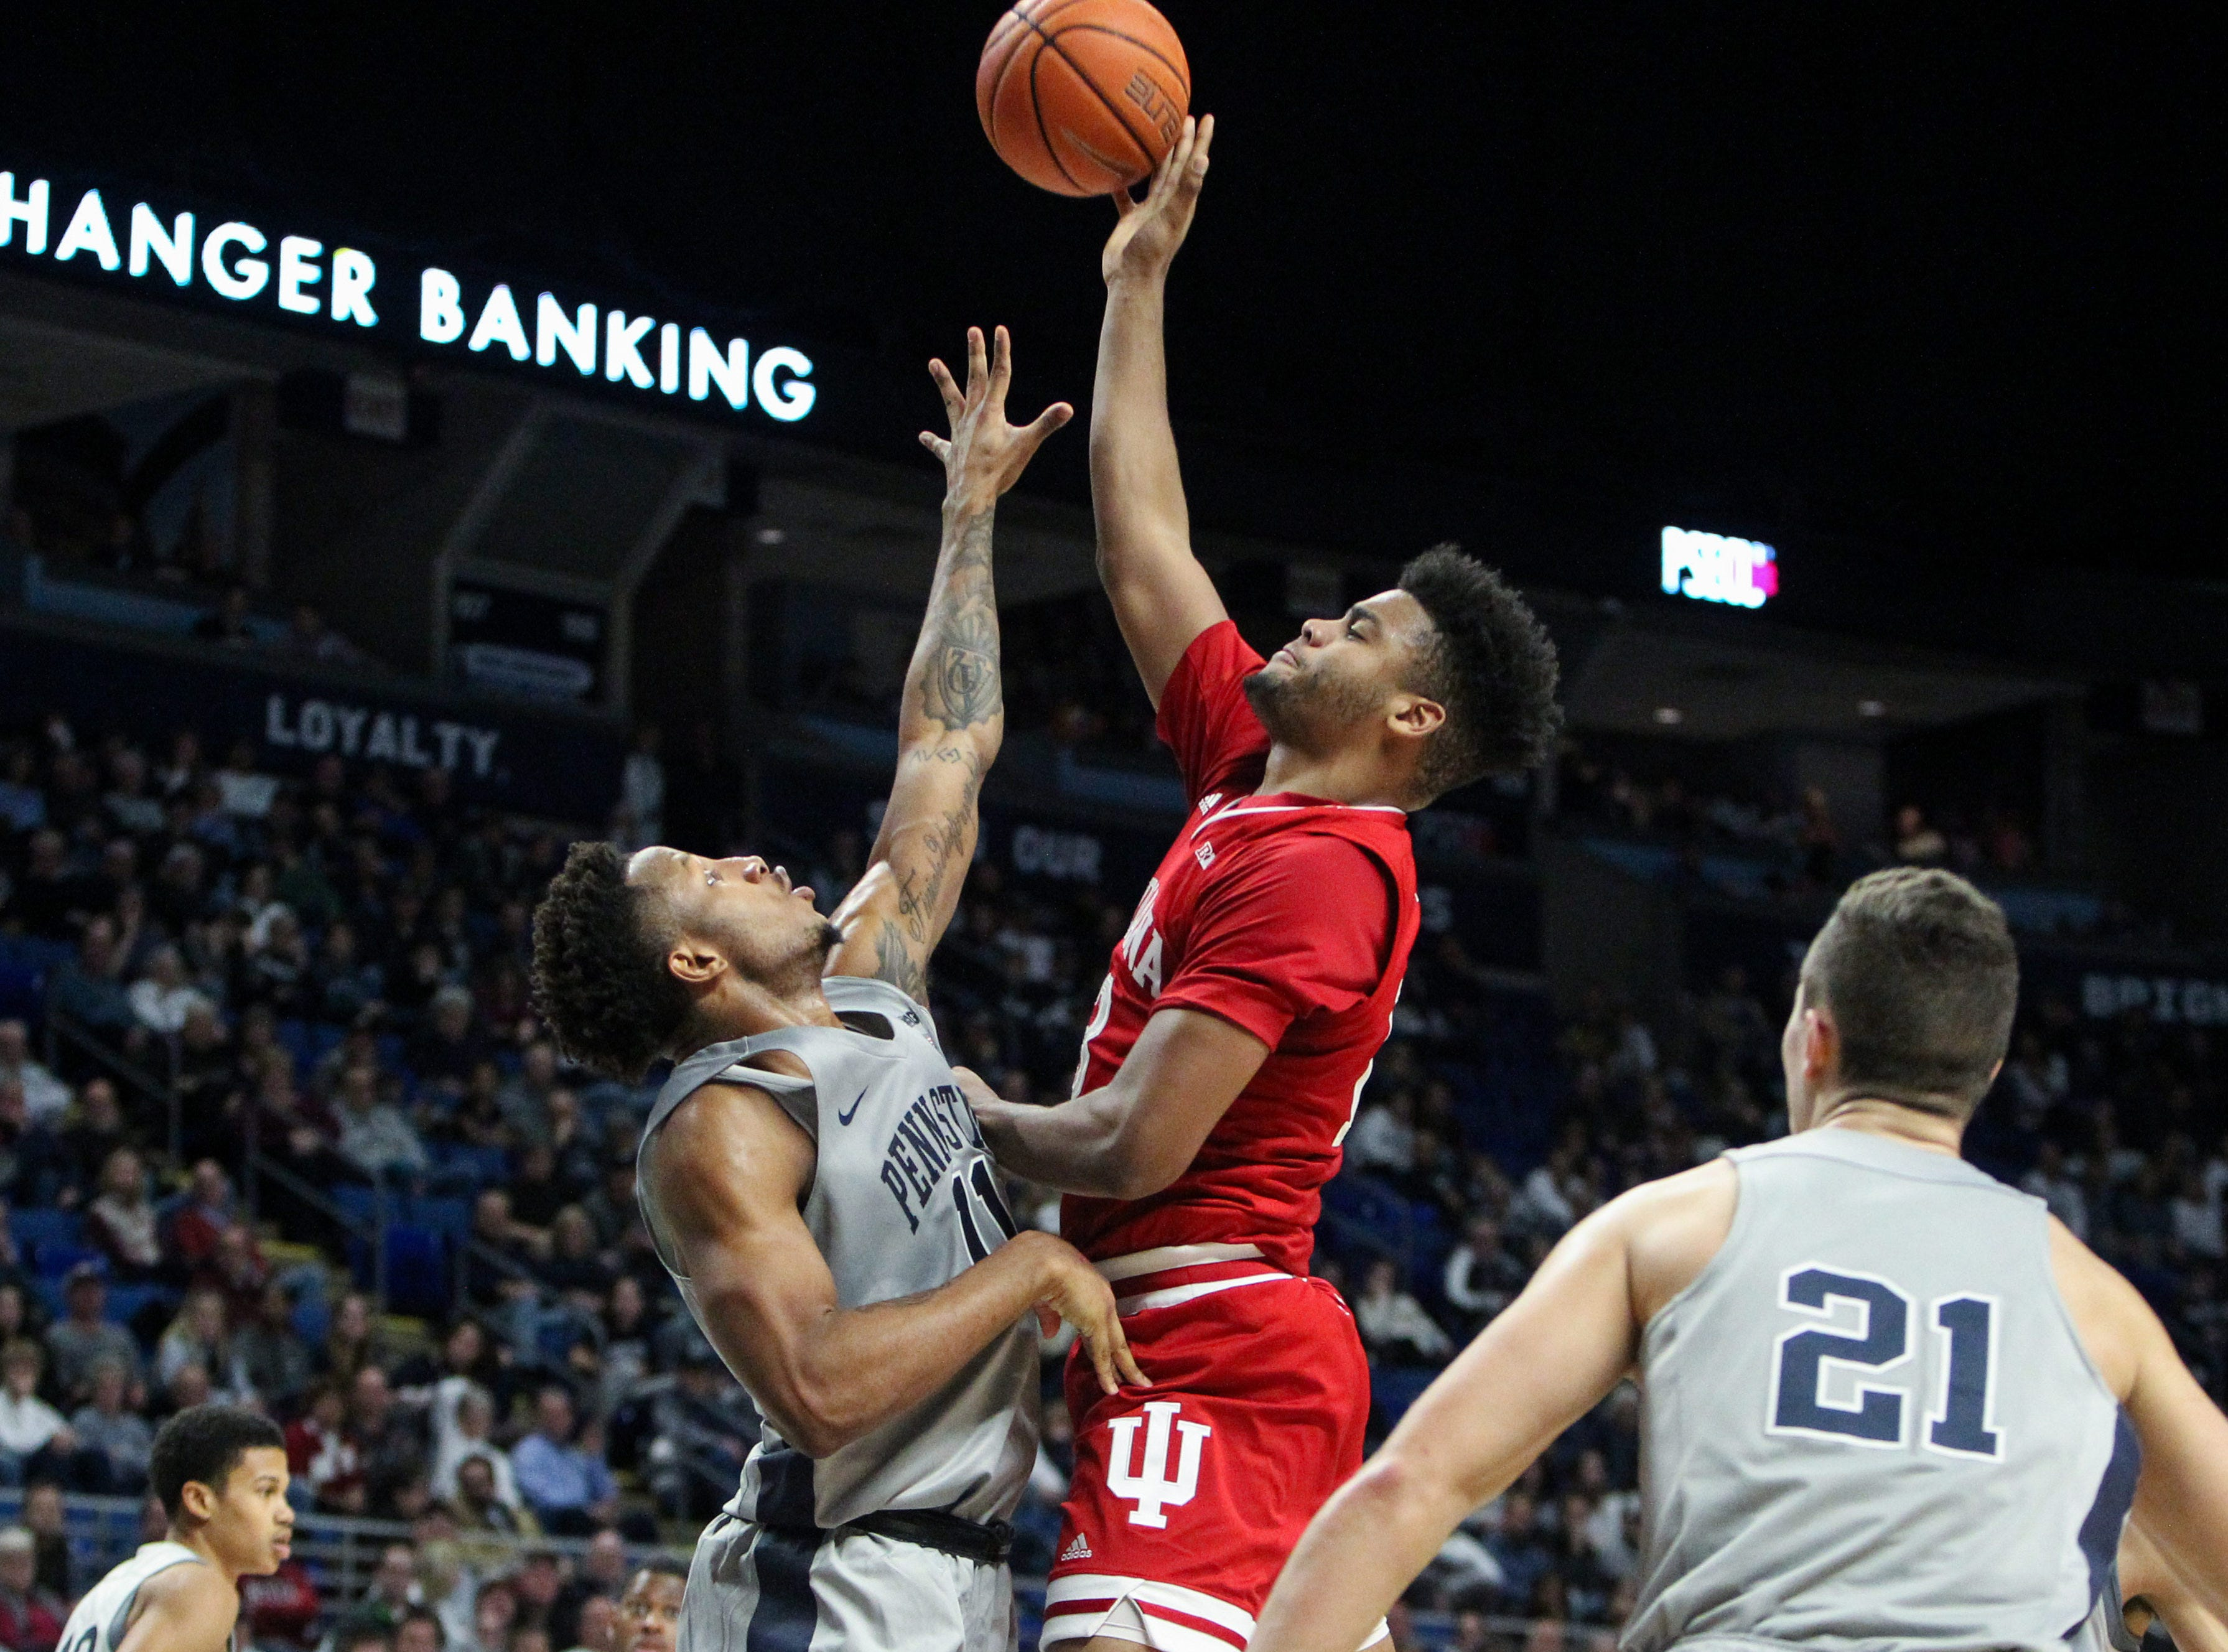 Dec 4, 2018; University Park, PA, USA; Indiana Hoosiers forward Juwan Morgan (13) drives to the basket against Penn State Nittany Lions forward Lamar Stevens (11) during the second half at Bryce Jordan Center. Indiana defeated Penn State 64-62. Mandatory Credit: Matthew O'Haren-USA TODAY Sports